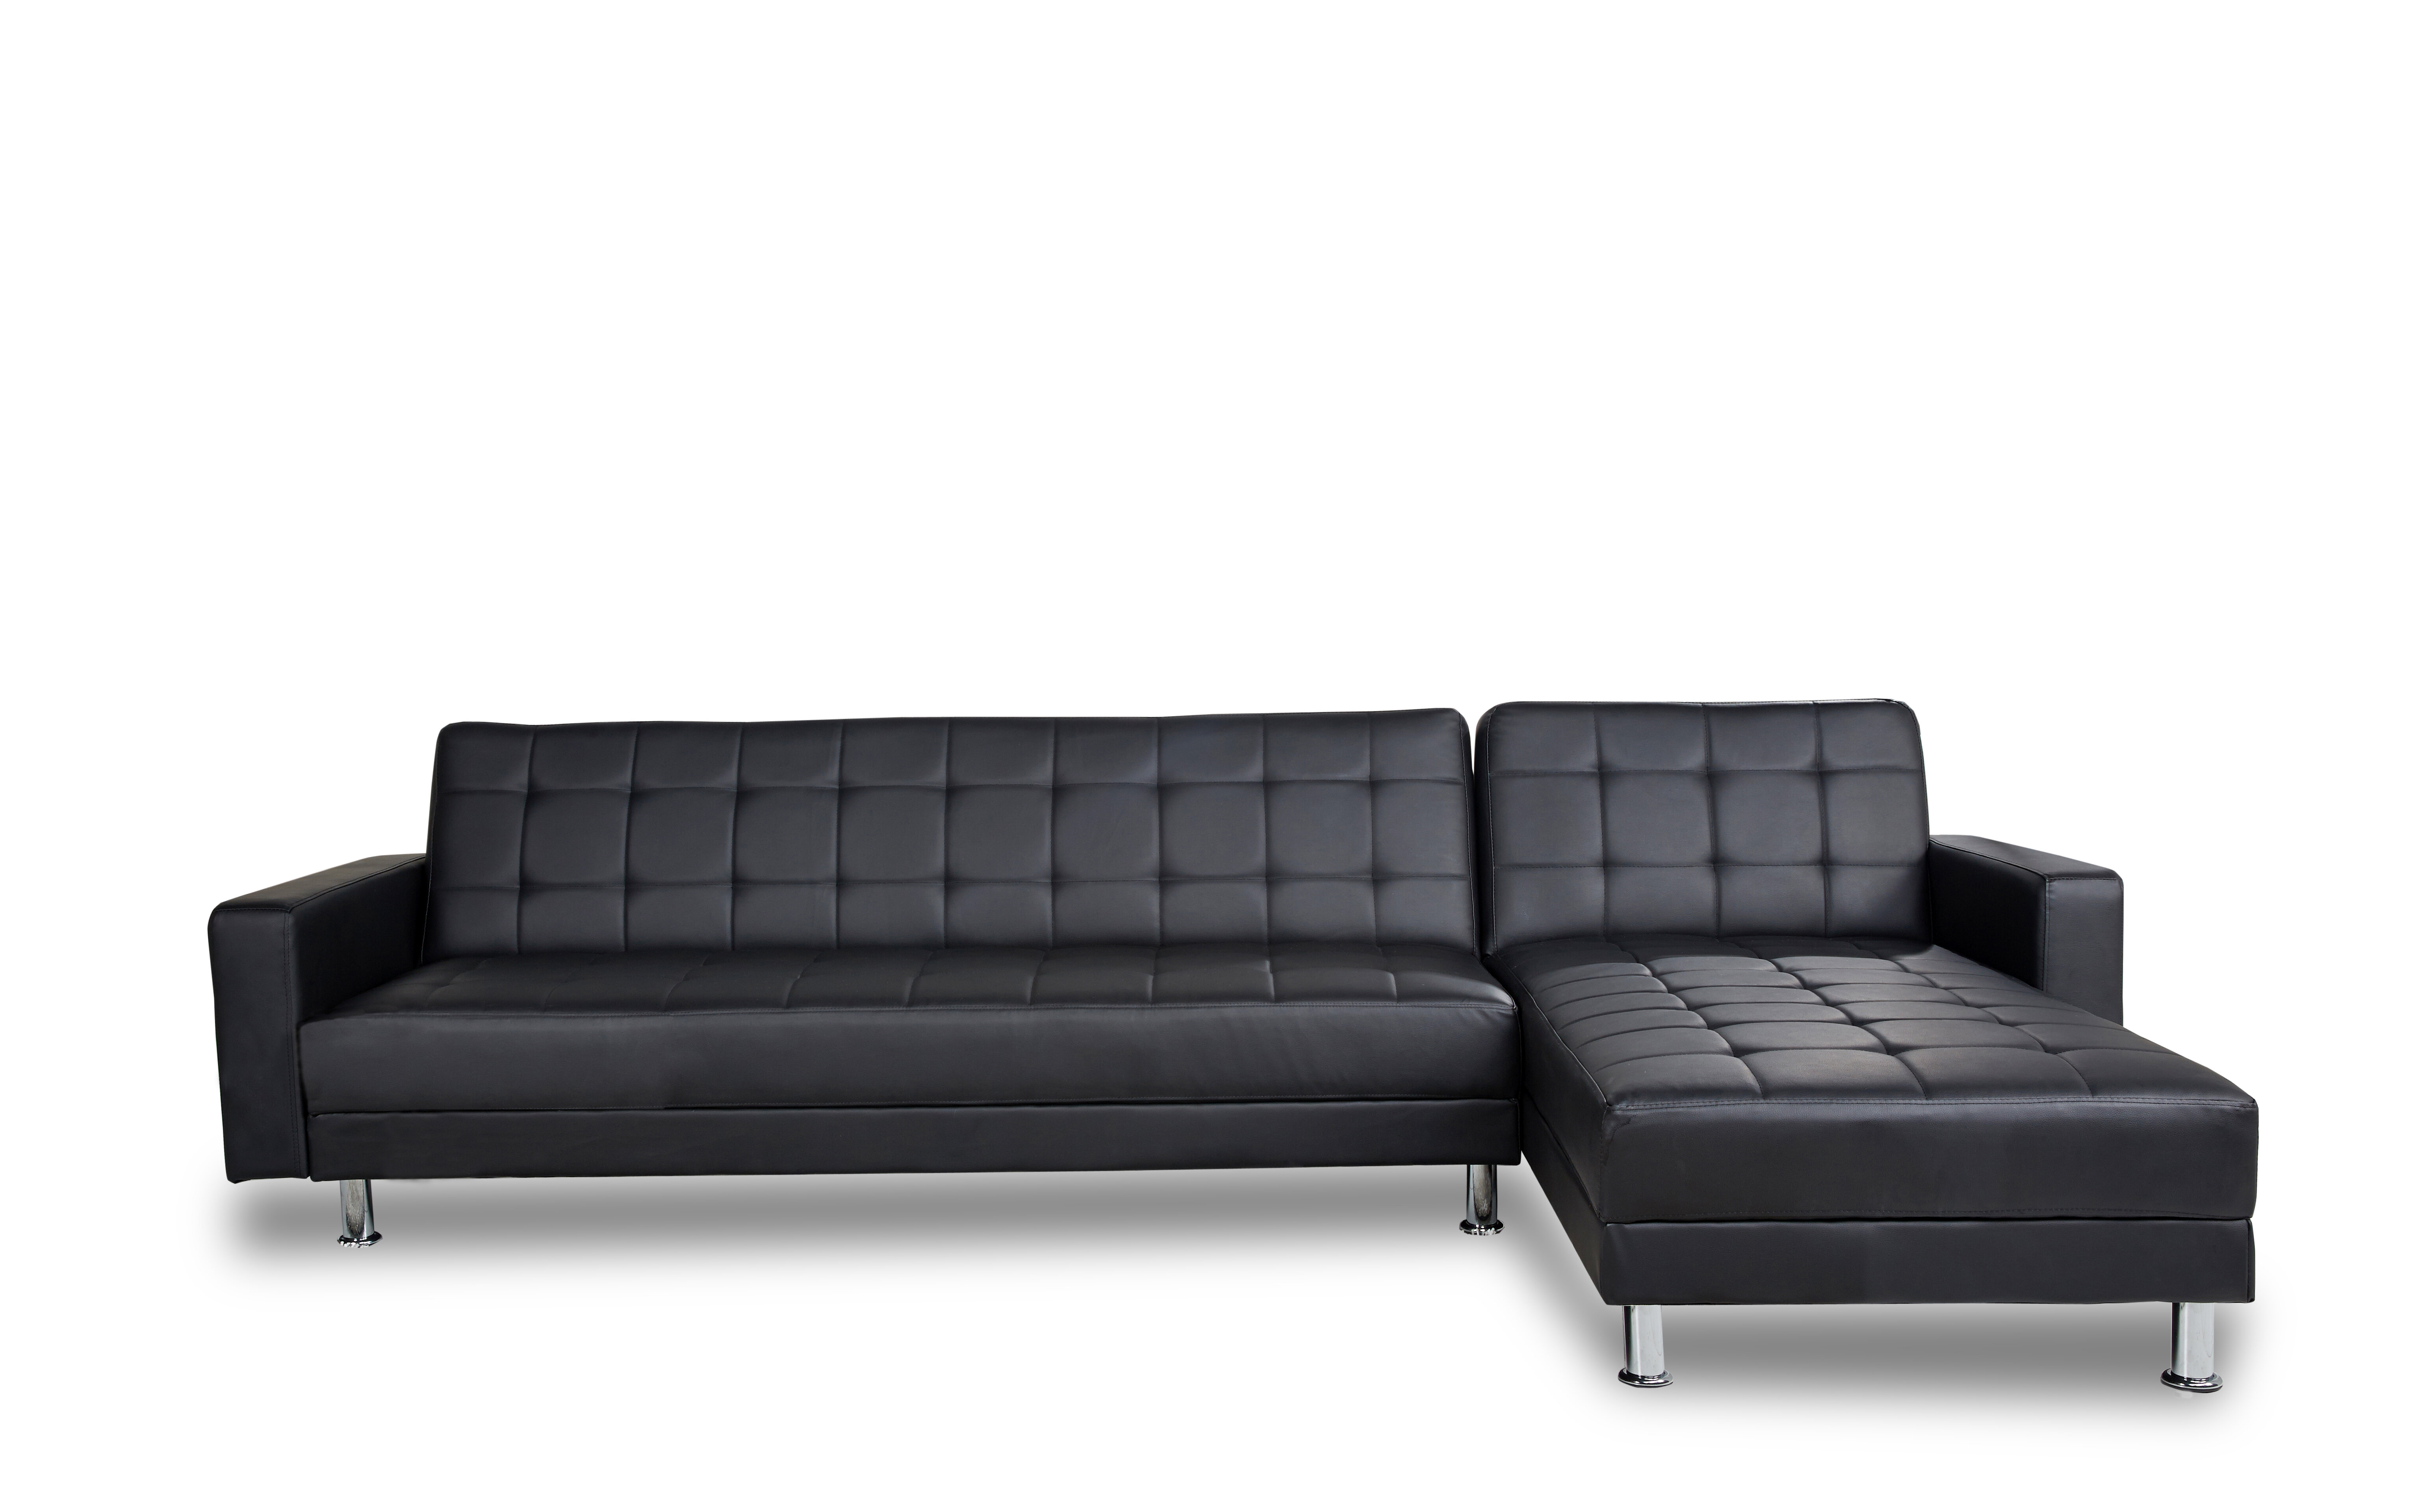 day lucas img c chaise sofas modular sofa next corner htm delivery